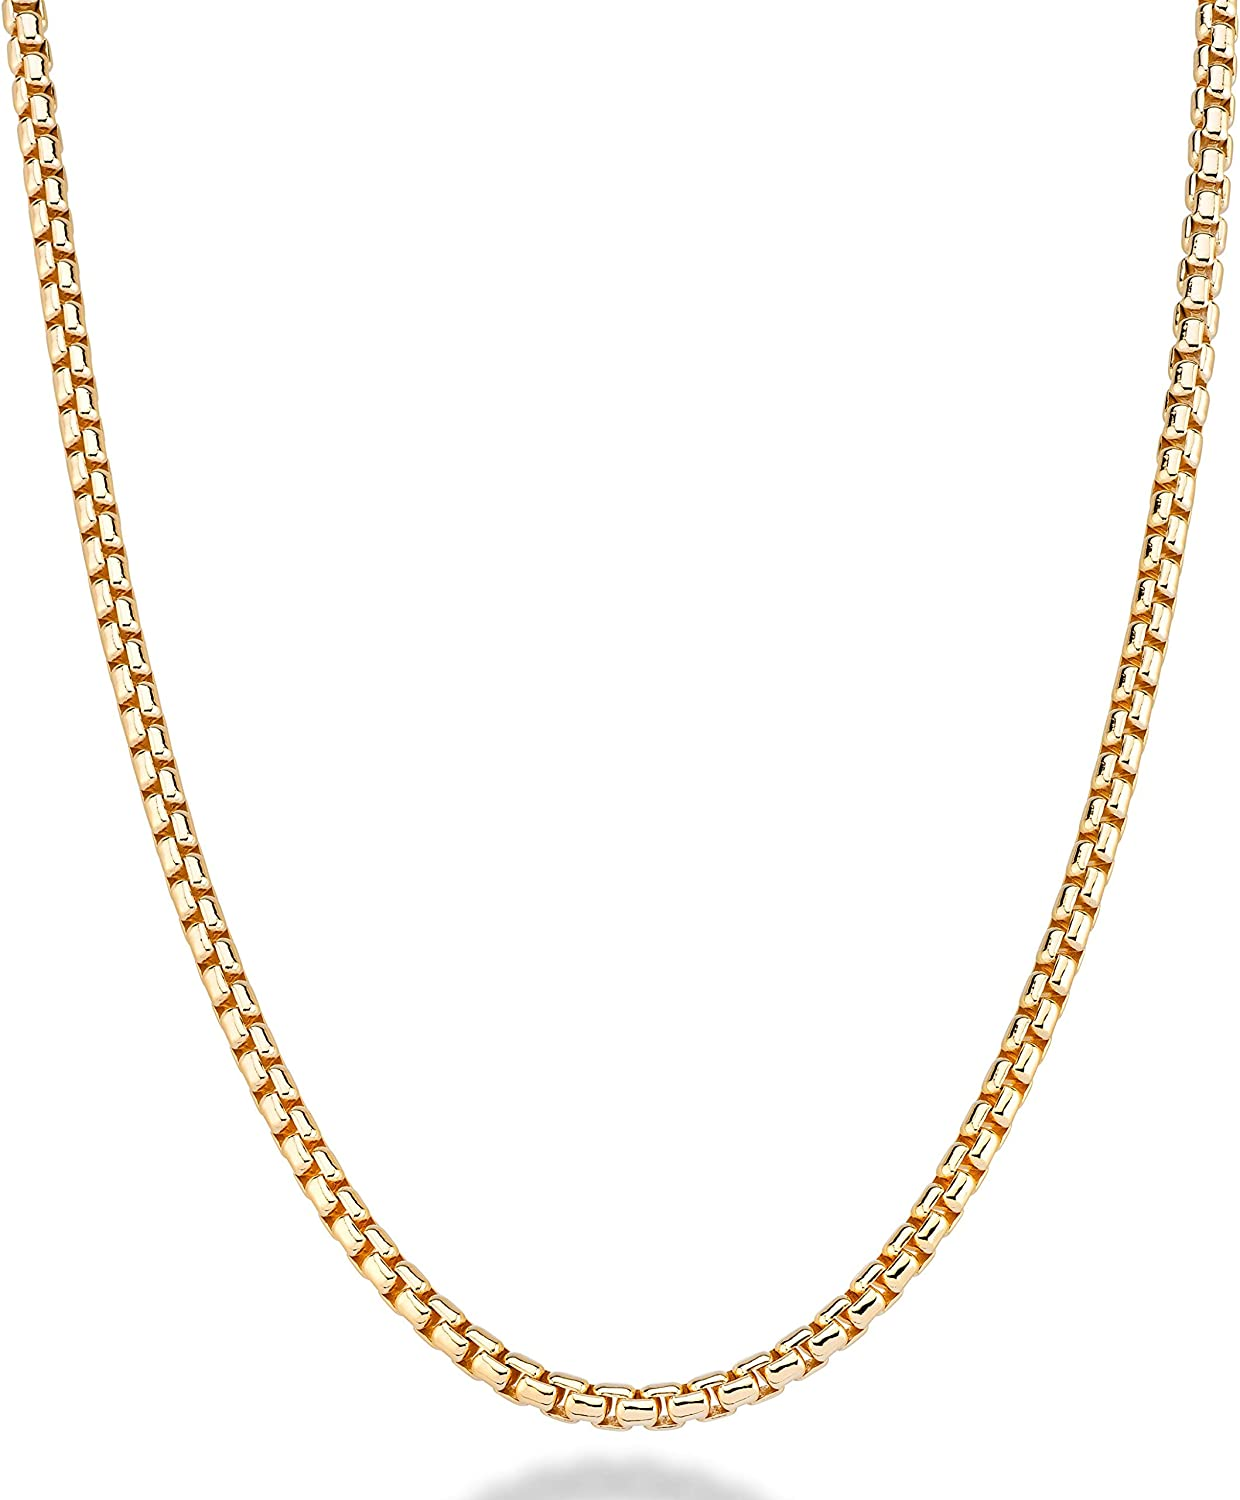 Miabella Solid 18K Gold Over Sterling Silver Italian 3.5mm Square Rolo Link Round Box Chain Necklace for Men Women 16, 18, 20, 22, 24, 26, 30 Inch 925 Made in Italy